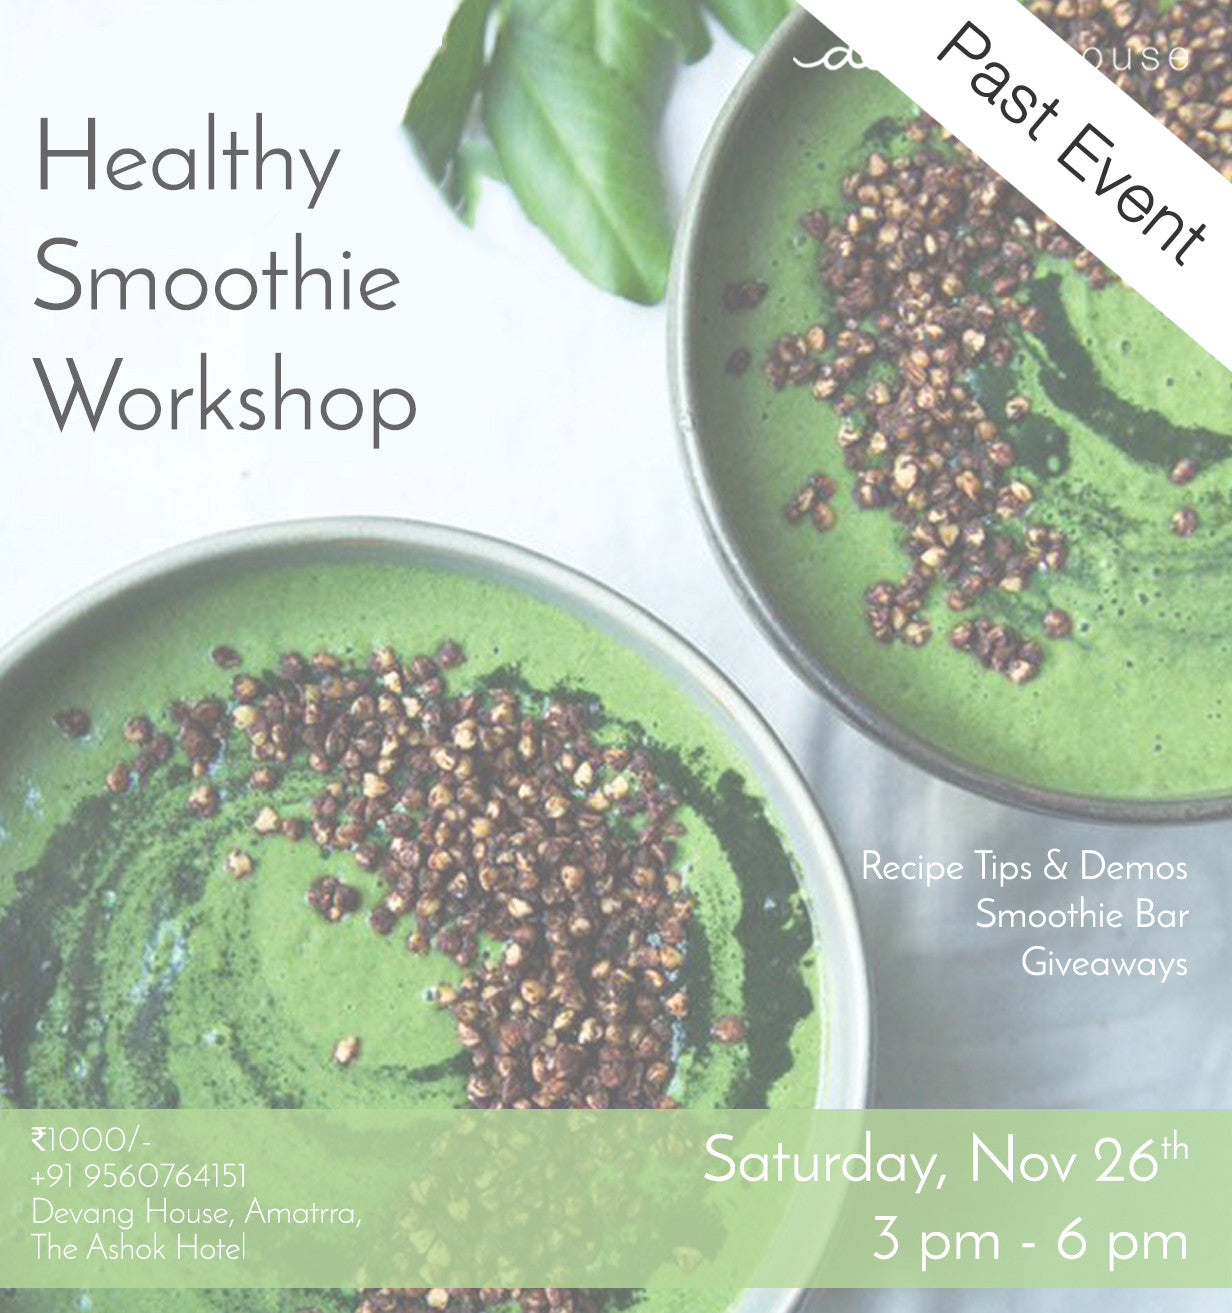 Healthy Smoothie Workshop